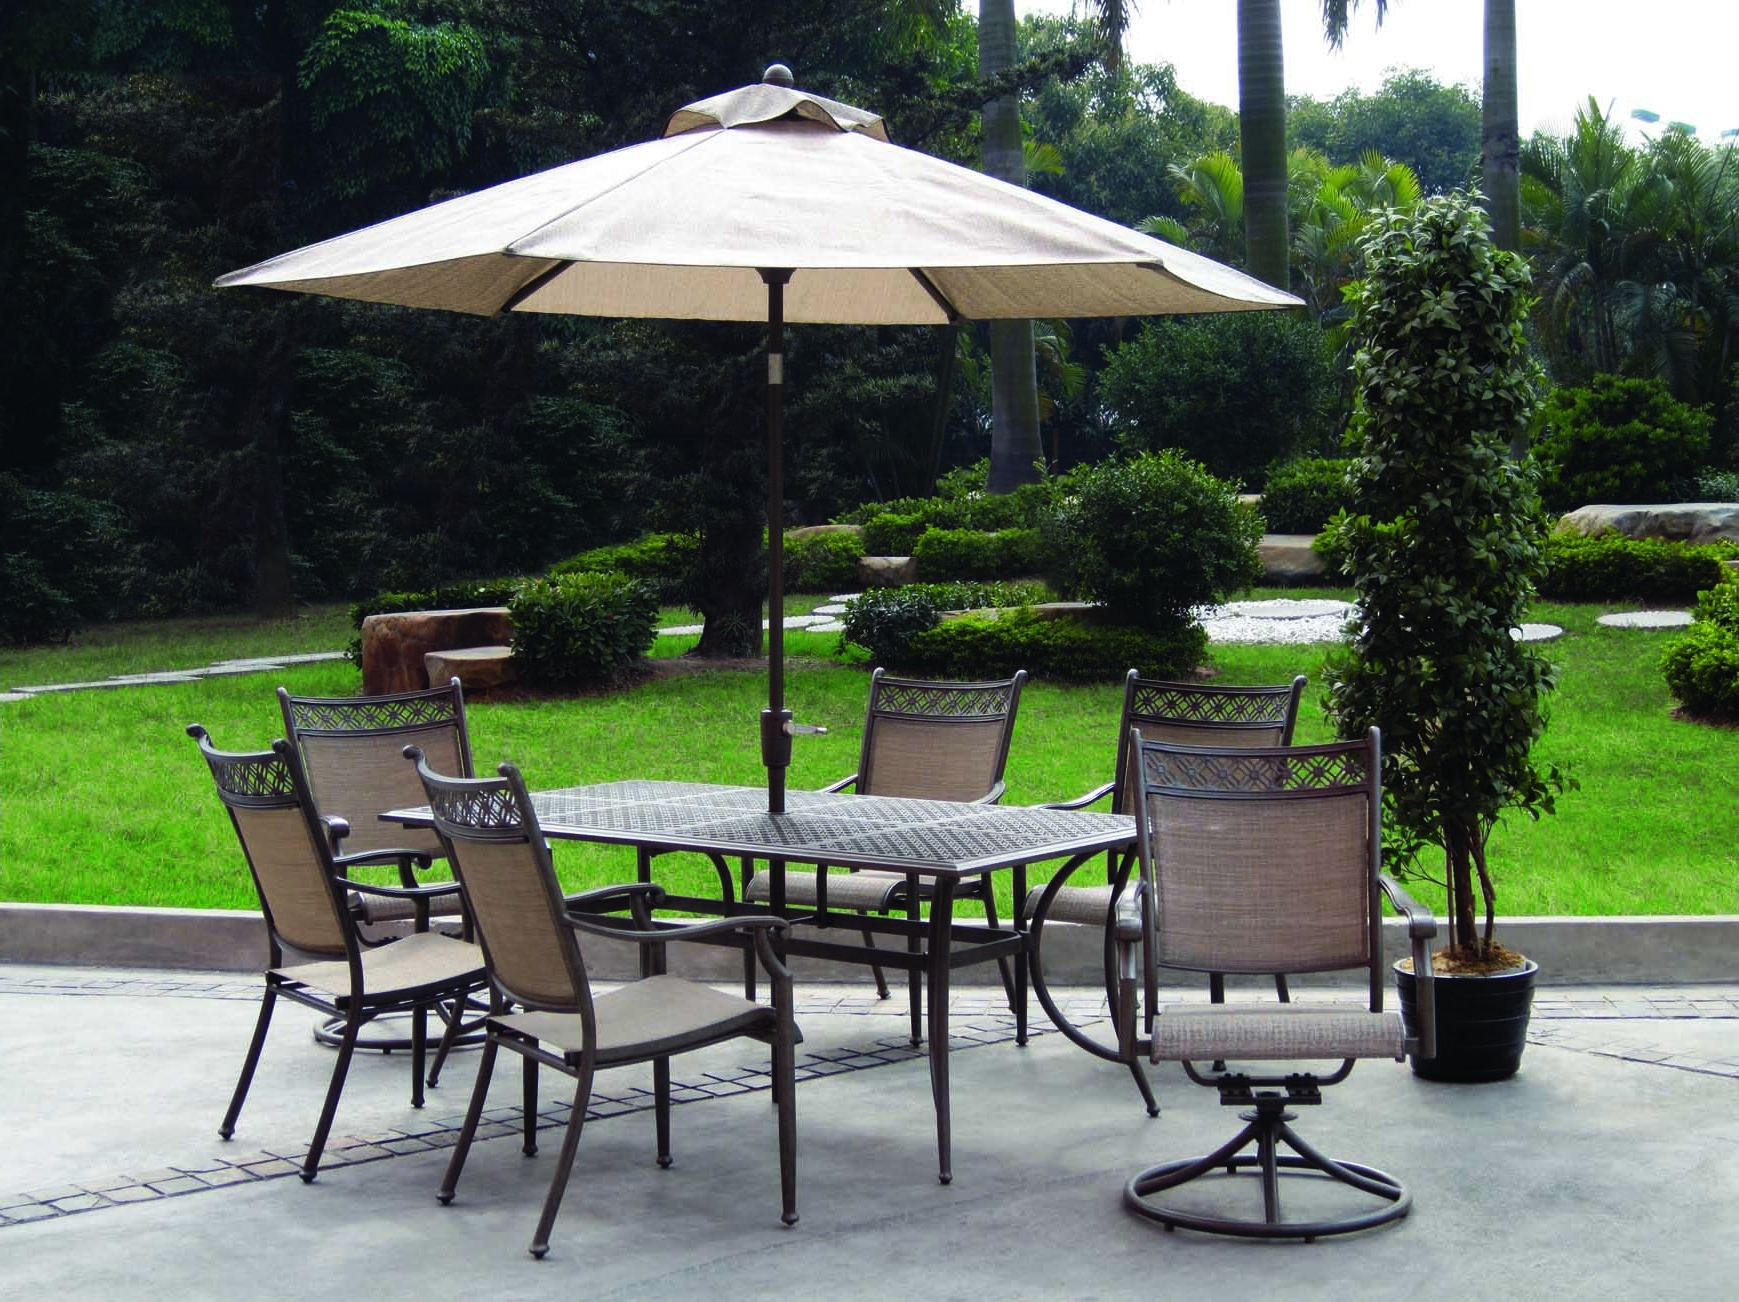 Patio Furniture With Umbrellas With Regard To Most Recently Released Home Depot Outdoor Furniture Umbrellas With 2 Swivel Chair Pine (View 15 of 20)